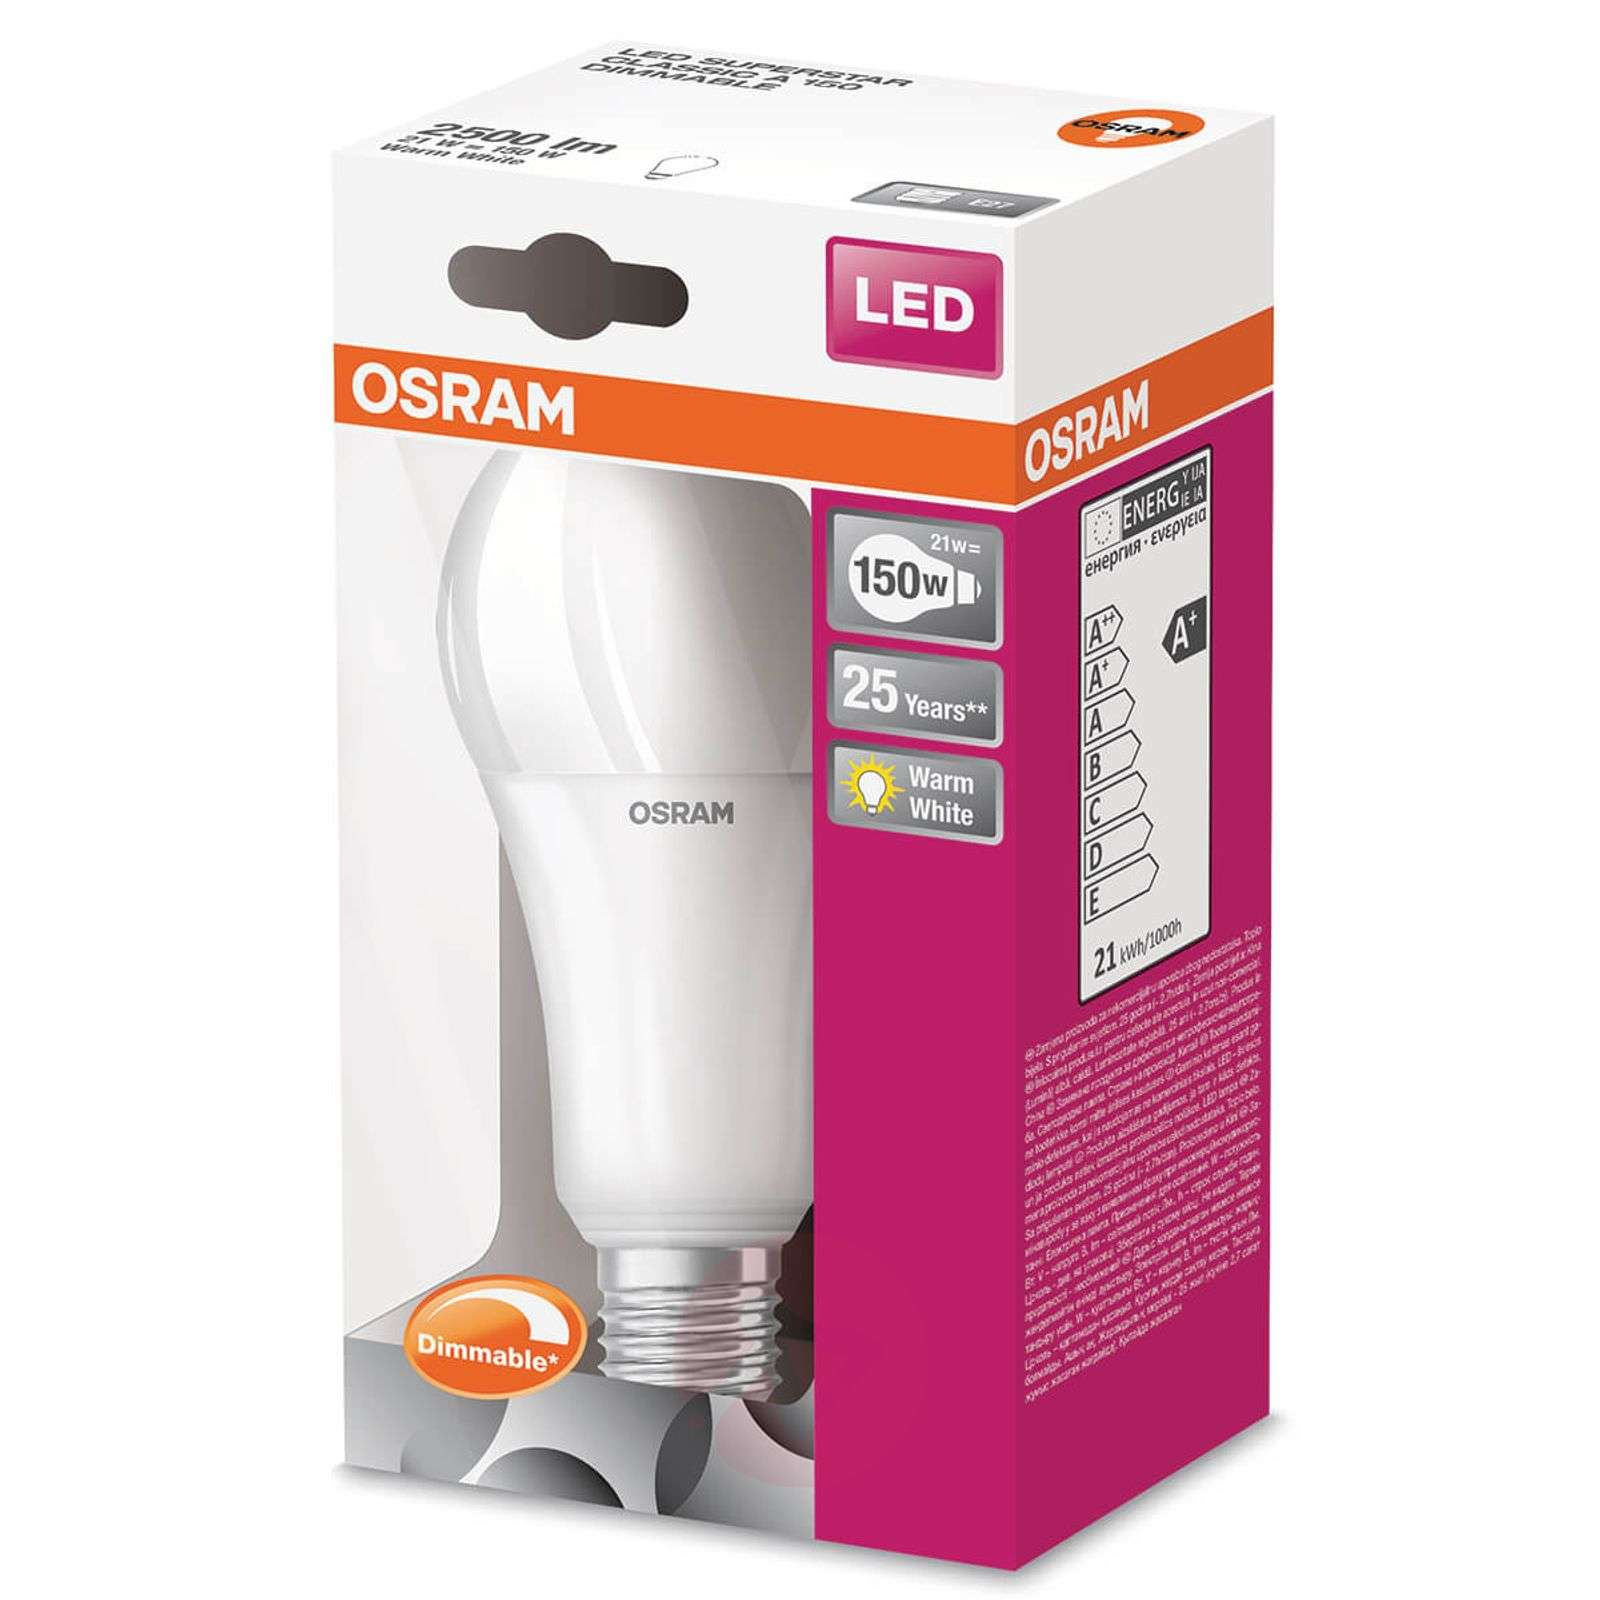 Lumens 2 White E27 Led 21w Warm Dimmable Bulb 500 dhxtrsQC